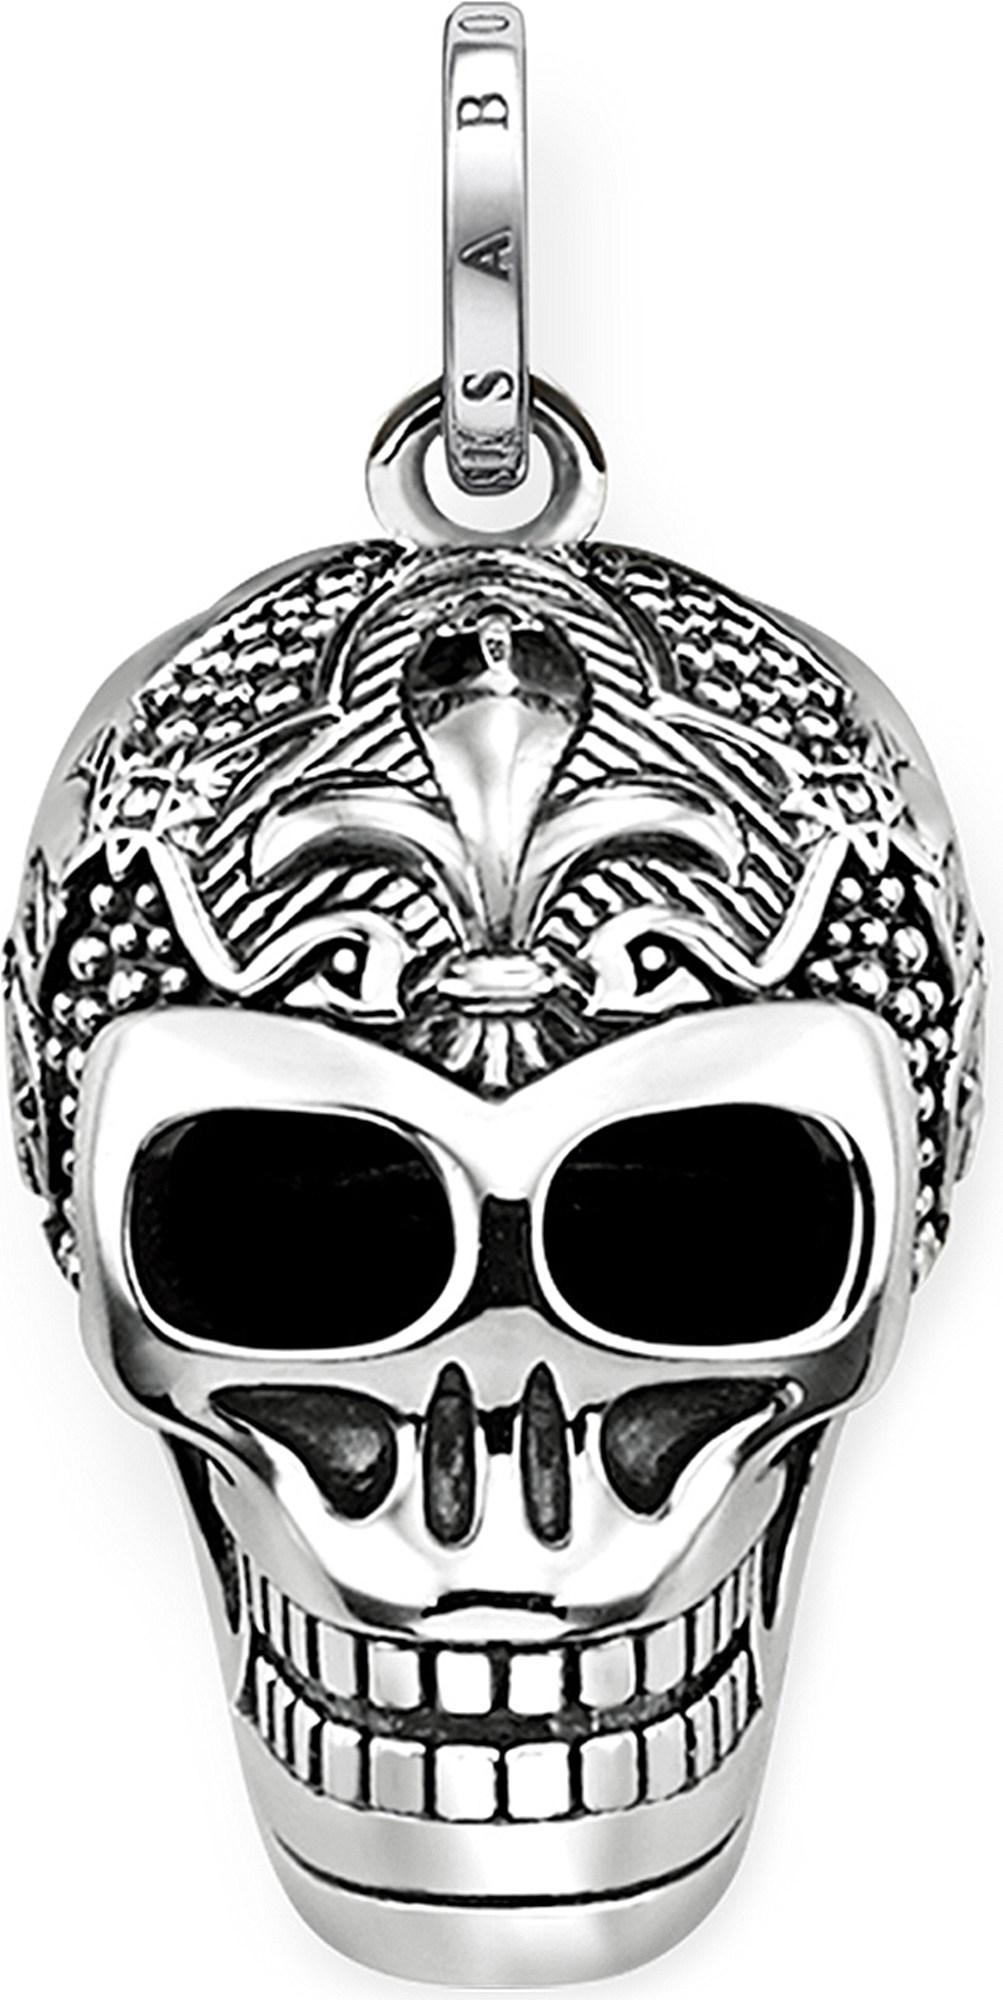 Lyst thomas sabo rebel at heart skull sterling silver pendant in gallery mozeypictures Image collections